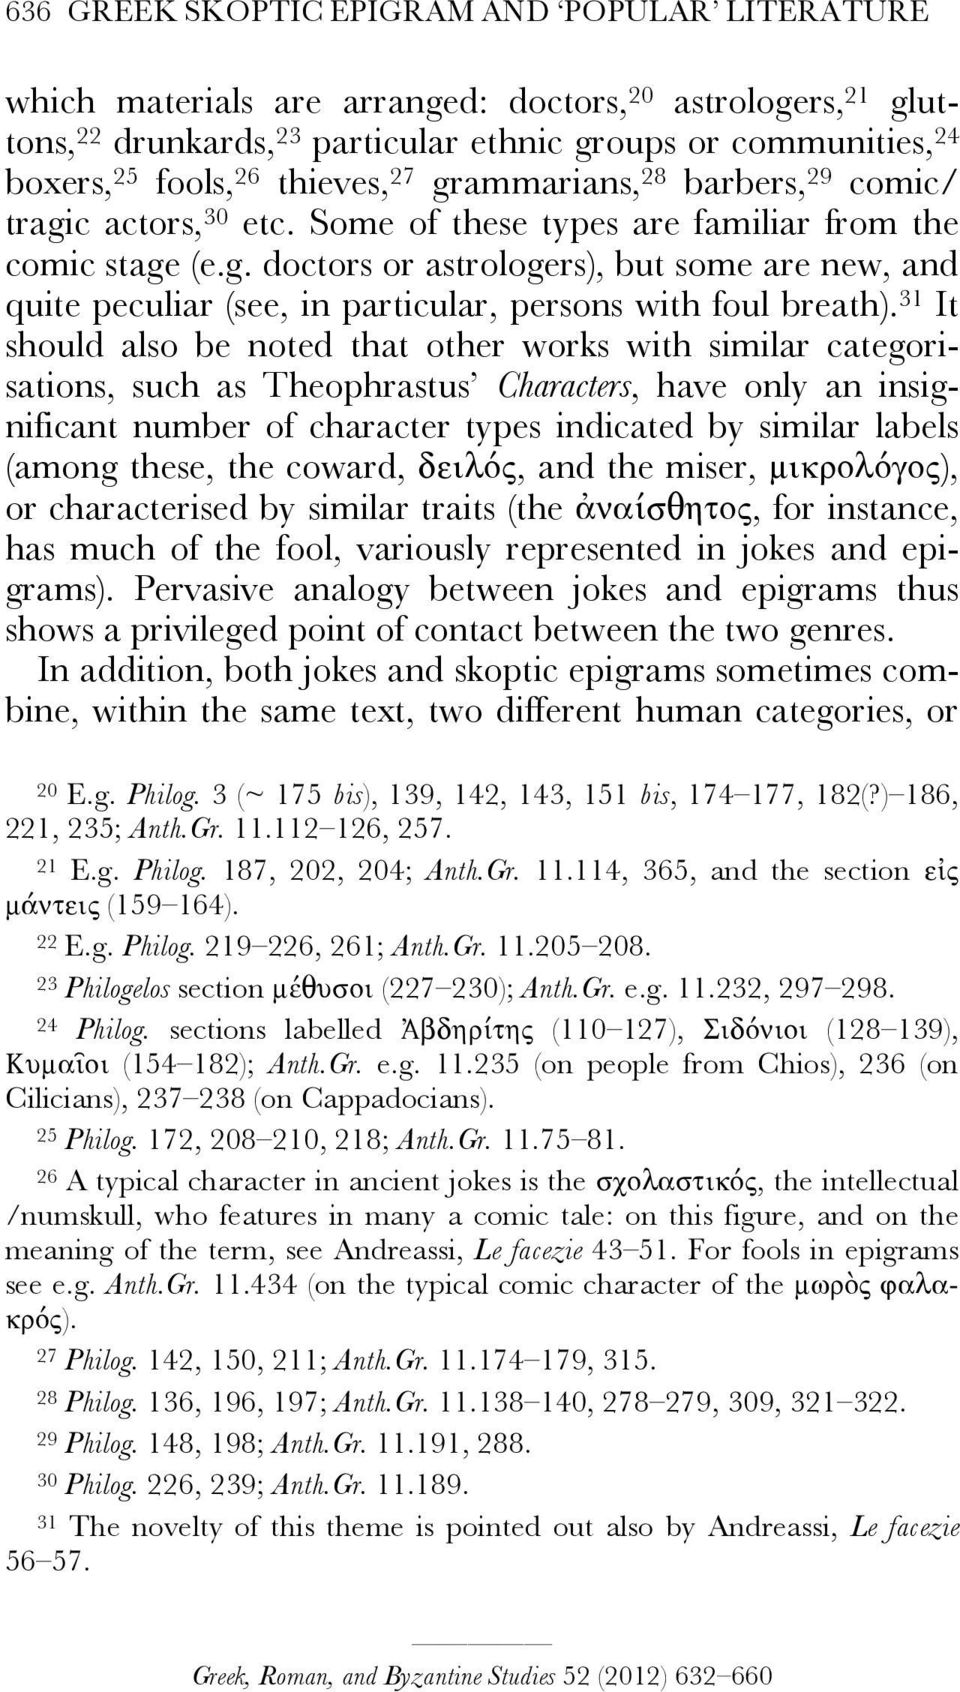 31 It should also be noted that other works with similar categorisations, such as Theophrastus Characters, have only an insignificant number of character types indicated by similar labels (among